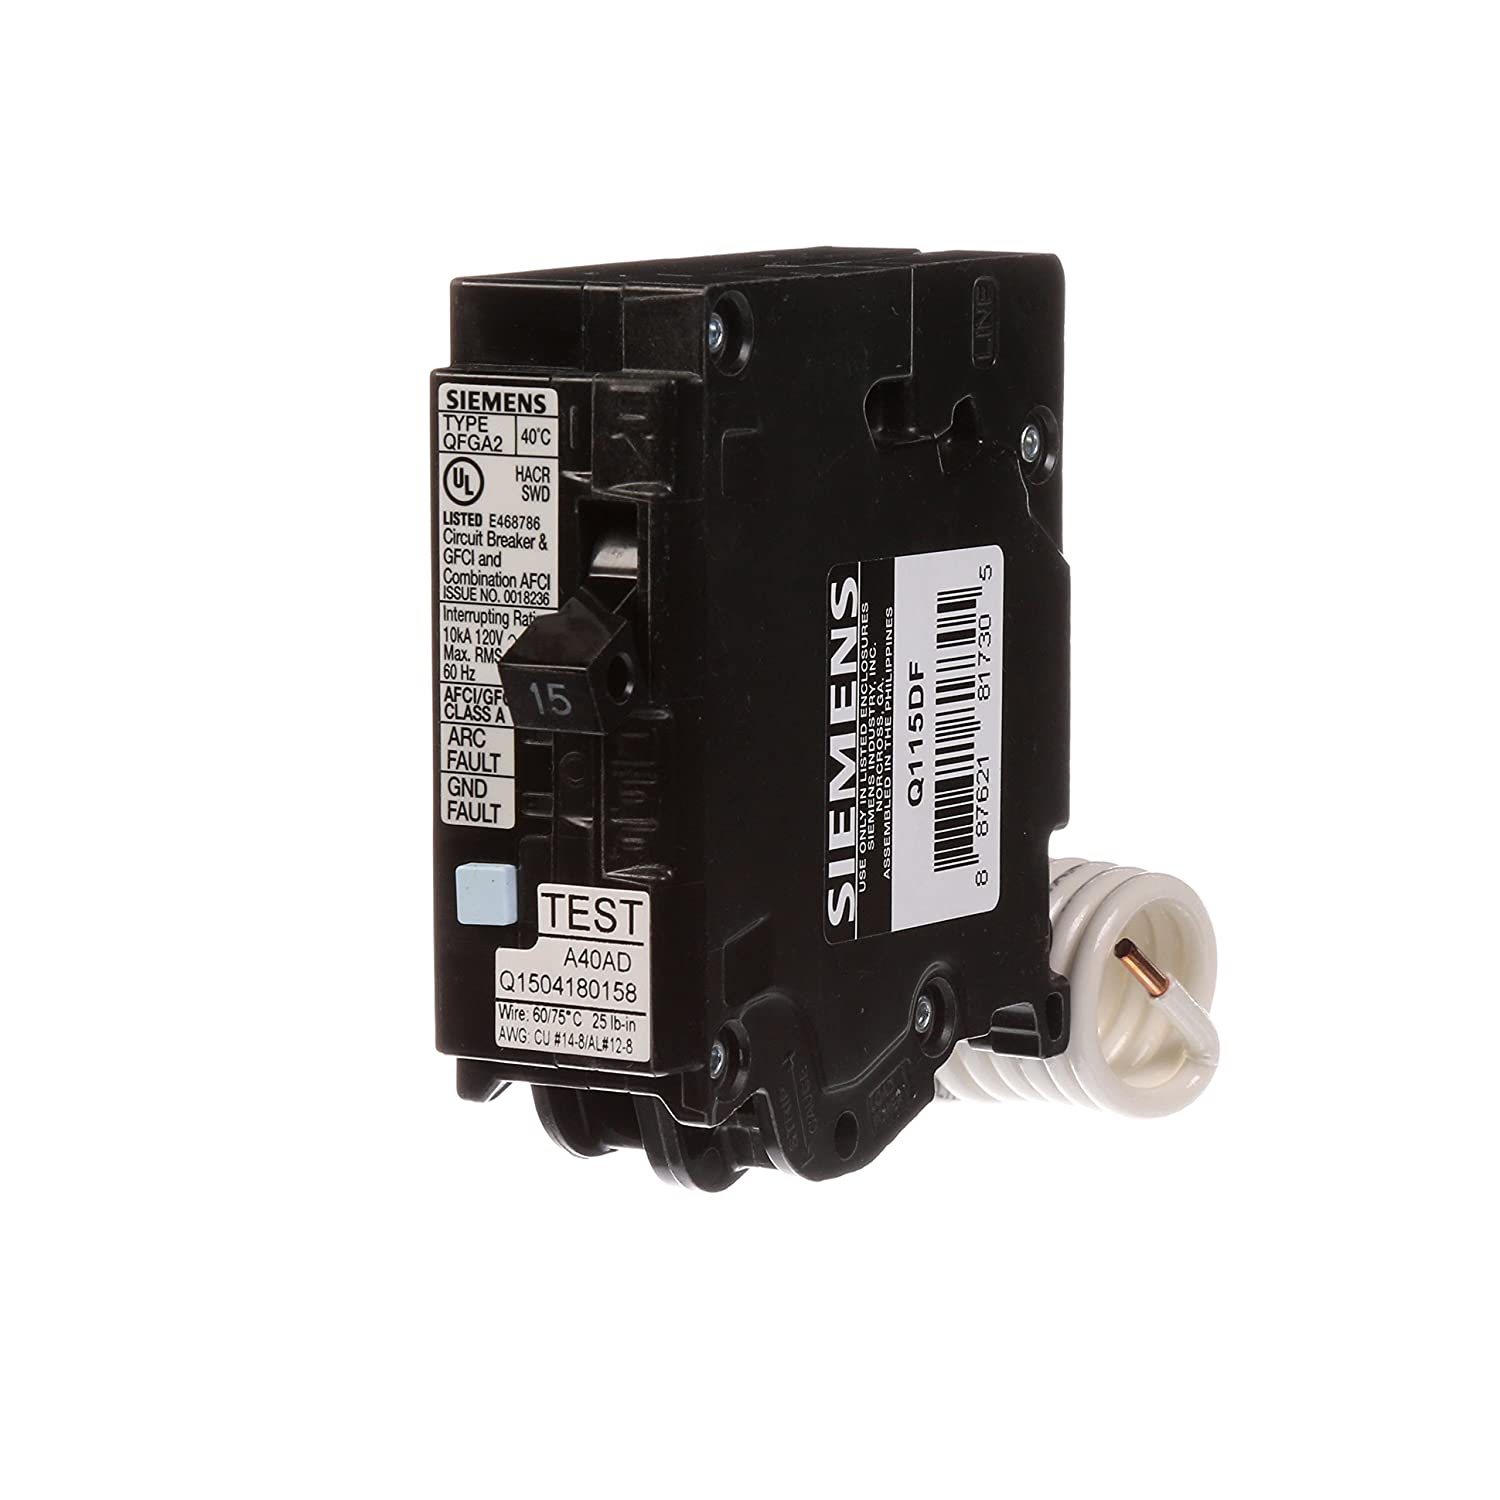 Siemens Q115DF 15-Amp Afci/Gfci Dual Function Circuit Breaker, Plug on Load  Center Style - - Amazon.com